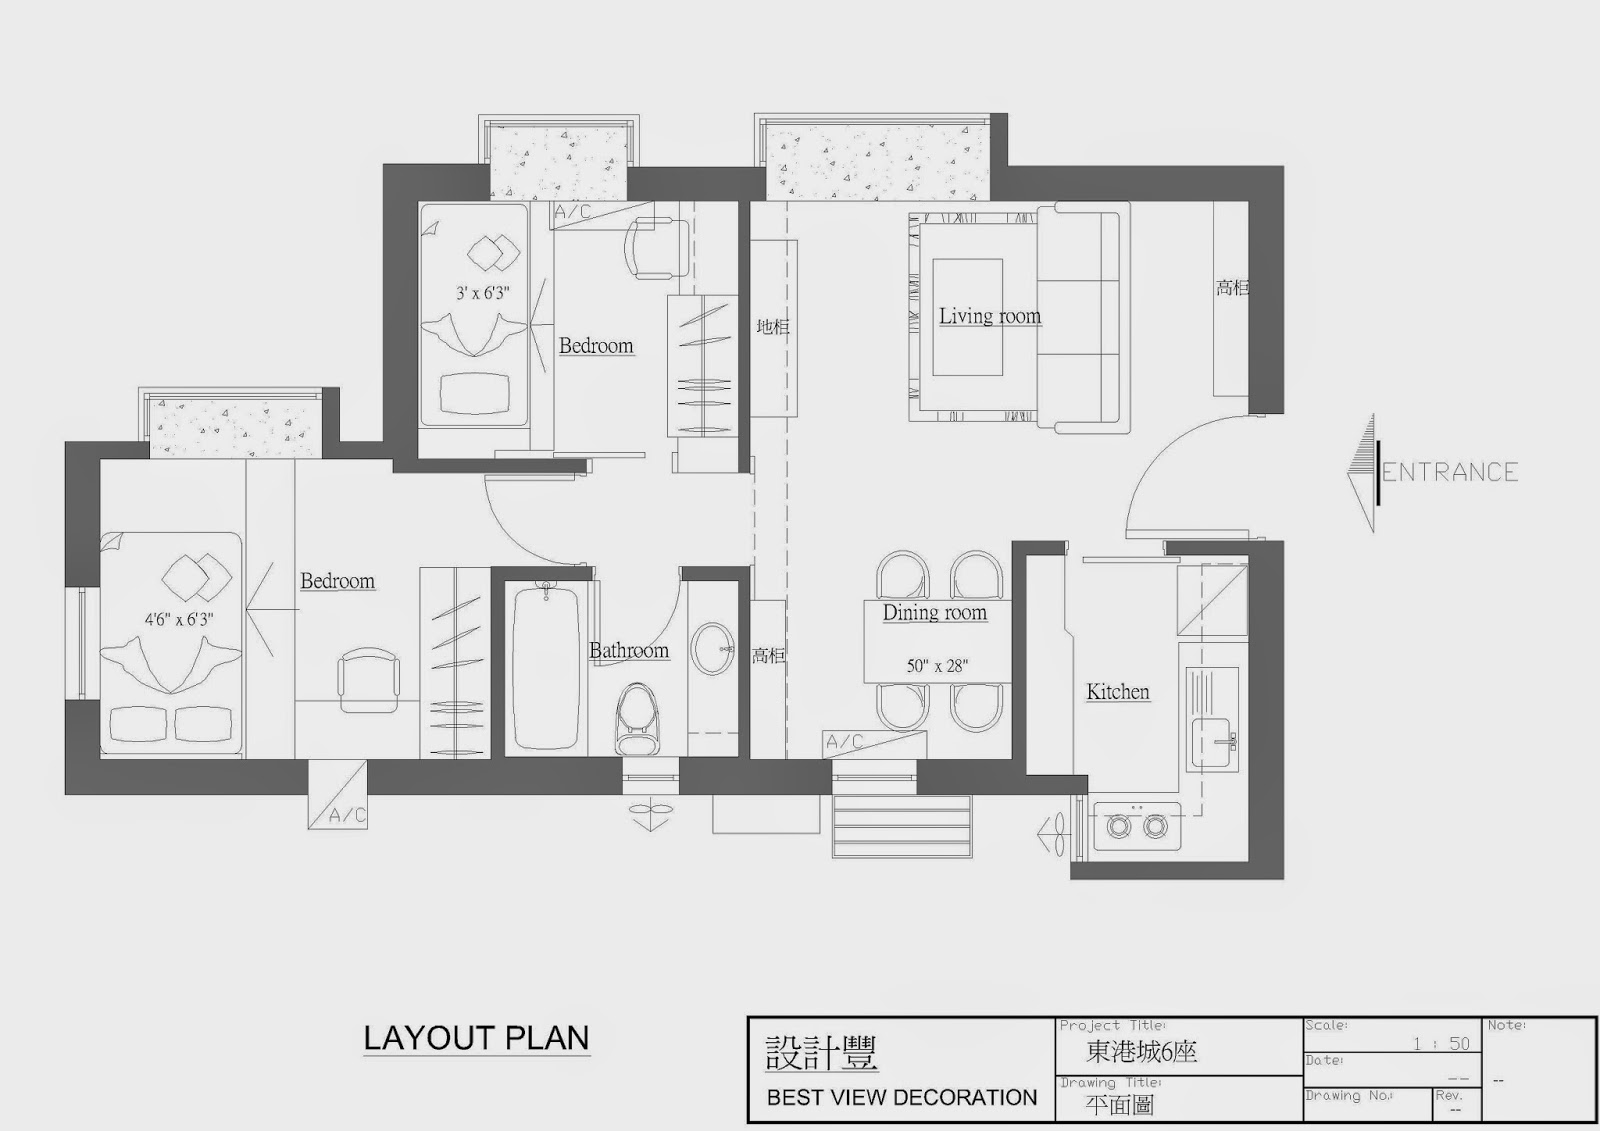 東港城室內設計平面圖,EAST POINT CITY interior design floor plan